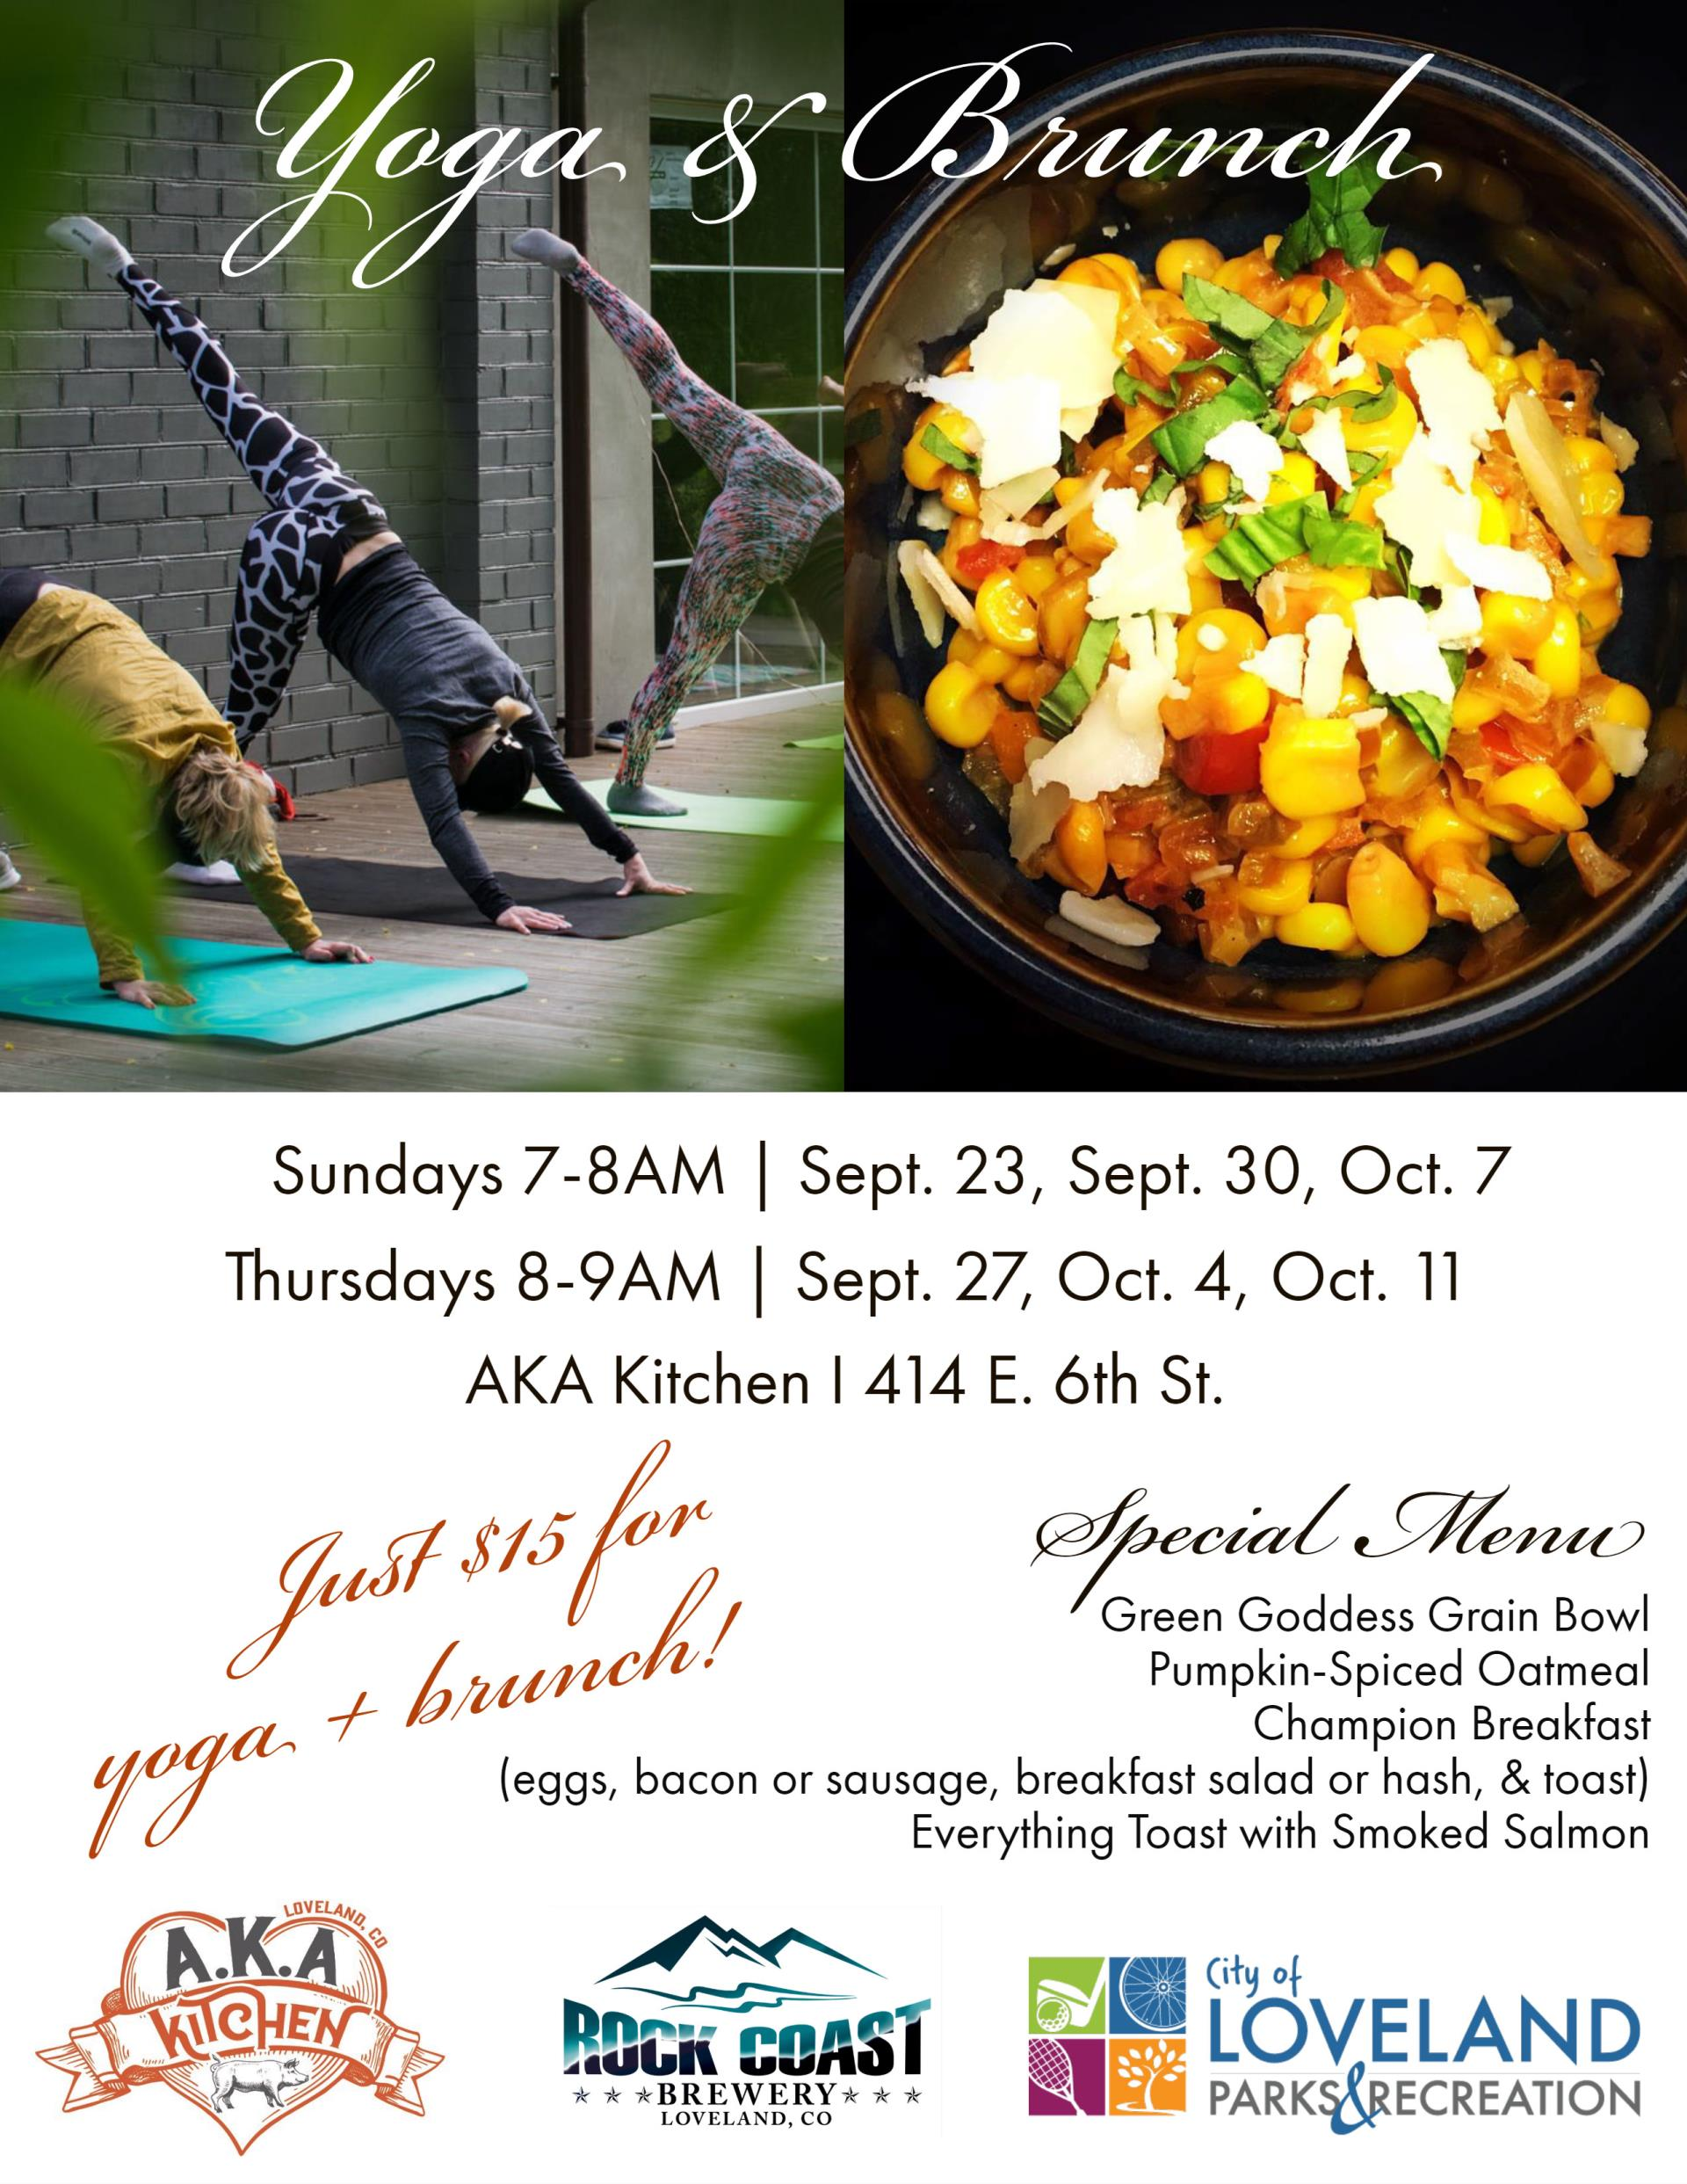 Yoga and brunch at AKA Kitchen in Loveland